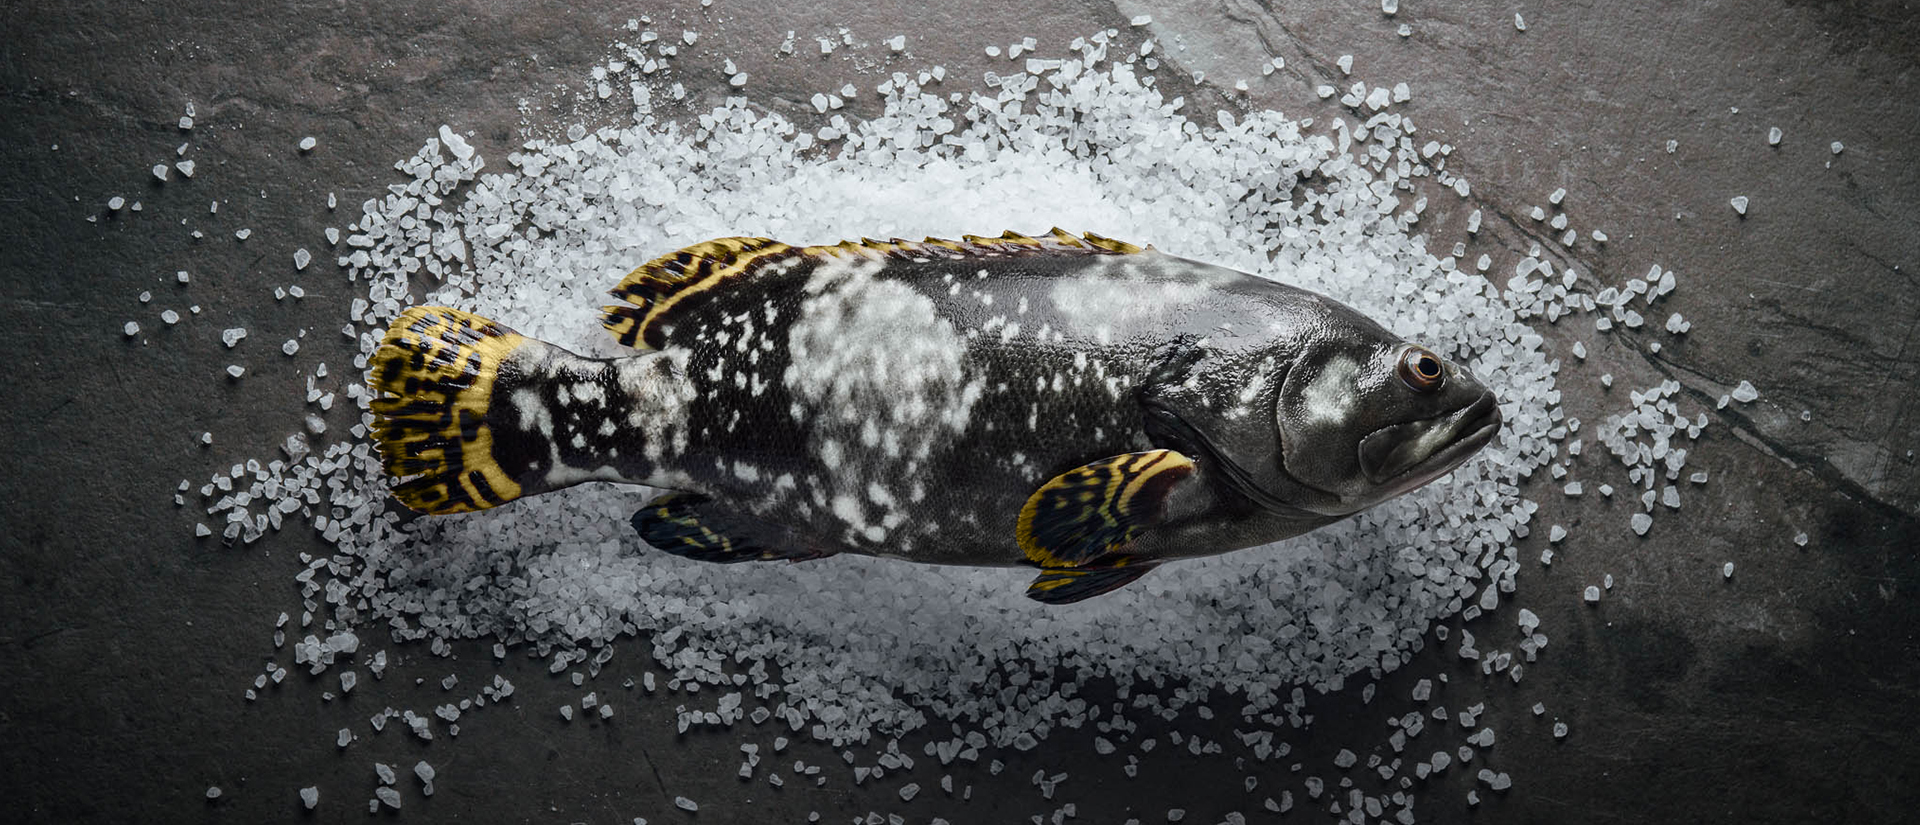 our-grouper-image-2